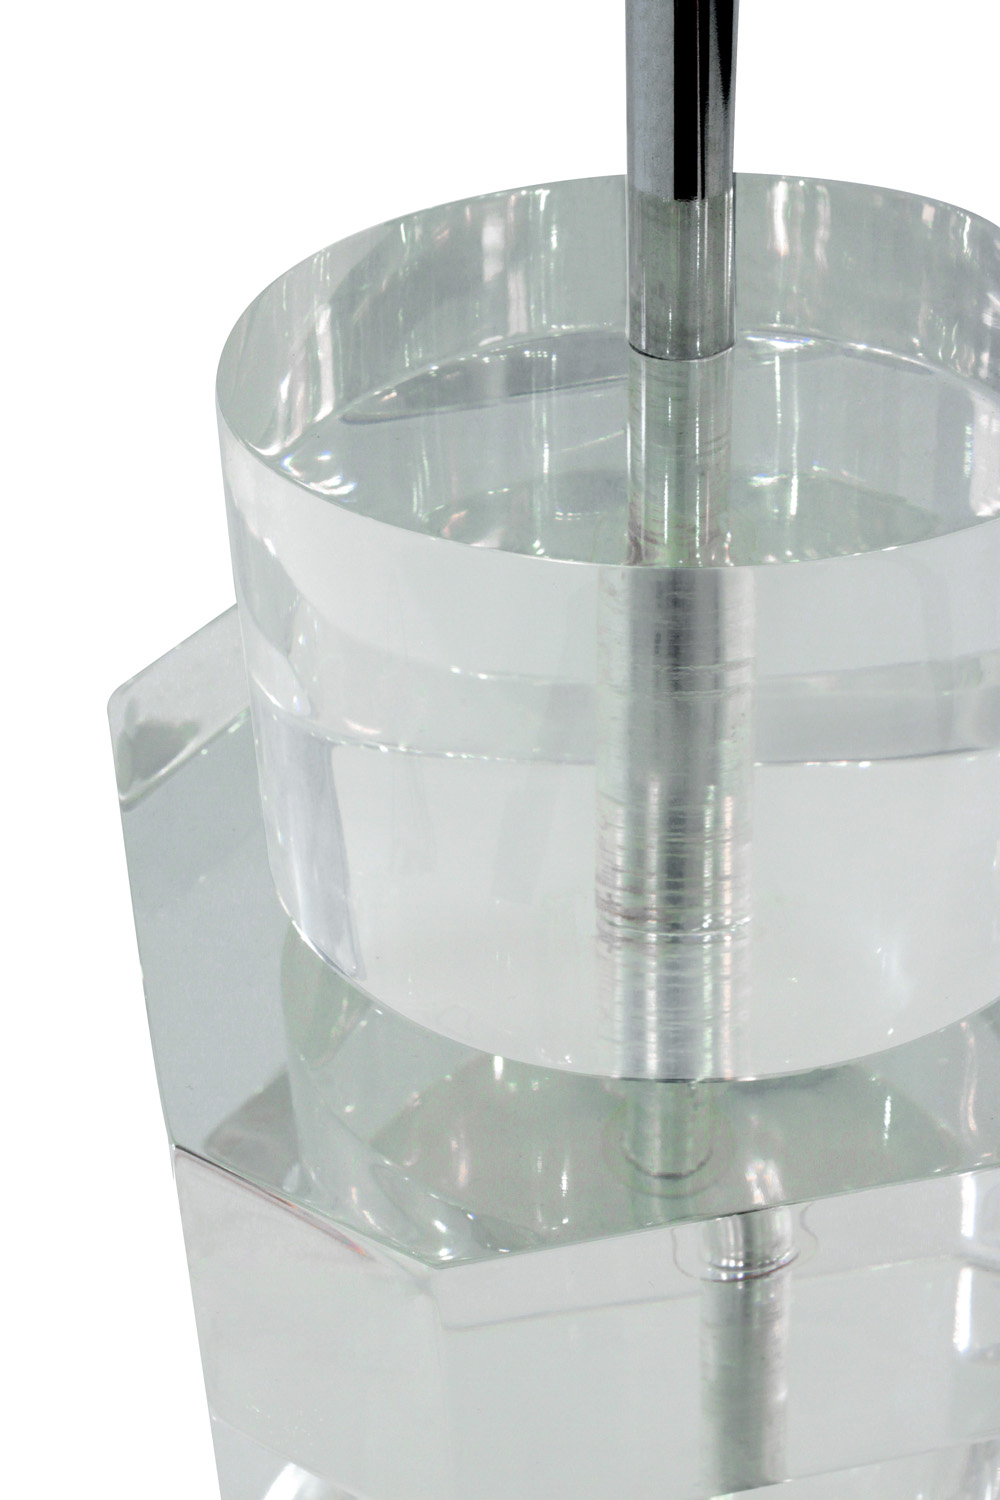 Springer 85 lucite rnd+8sided tablelamp326 detail02 hires.jpg